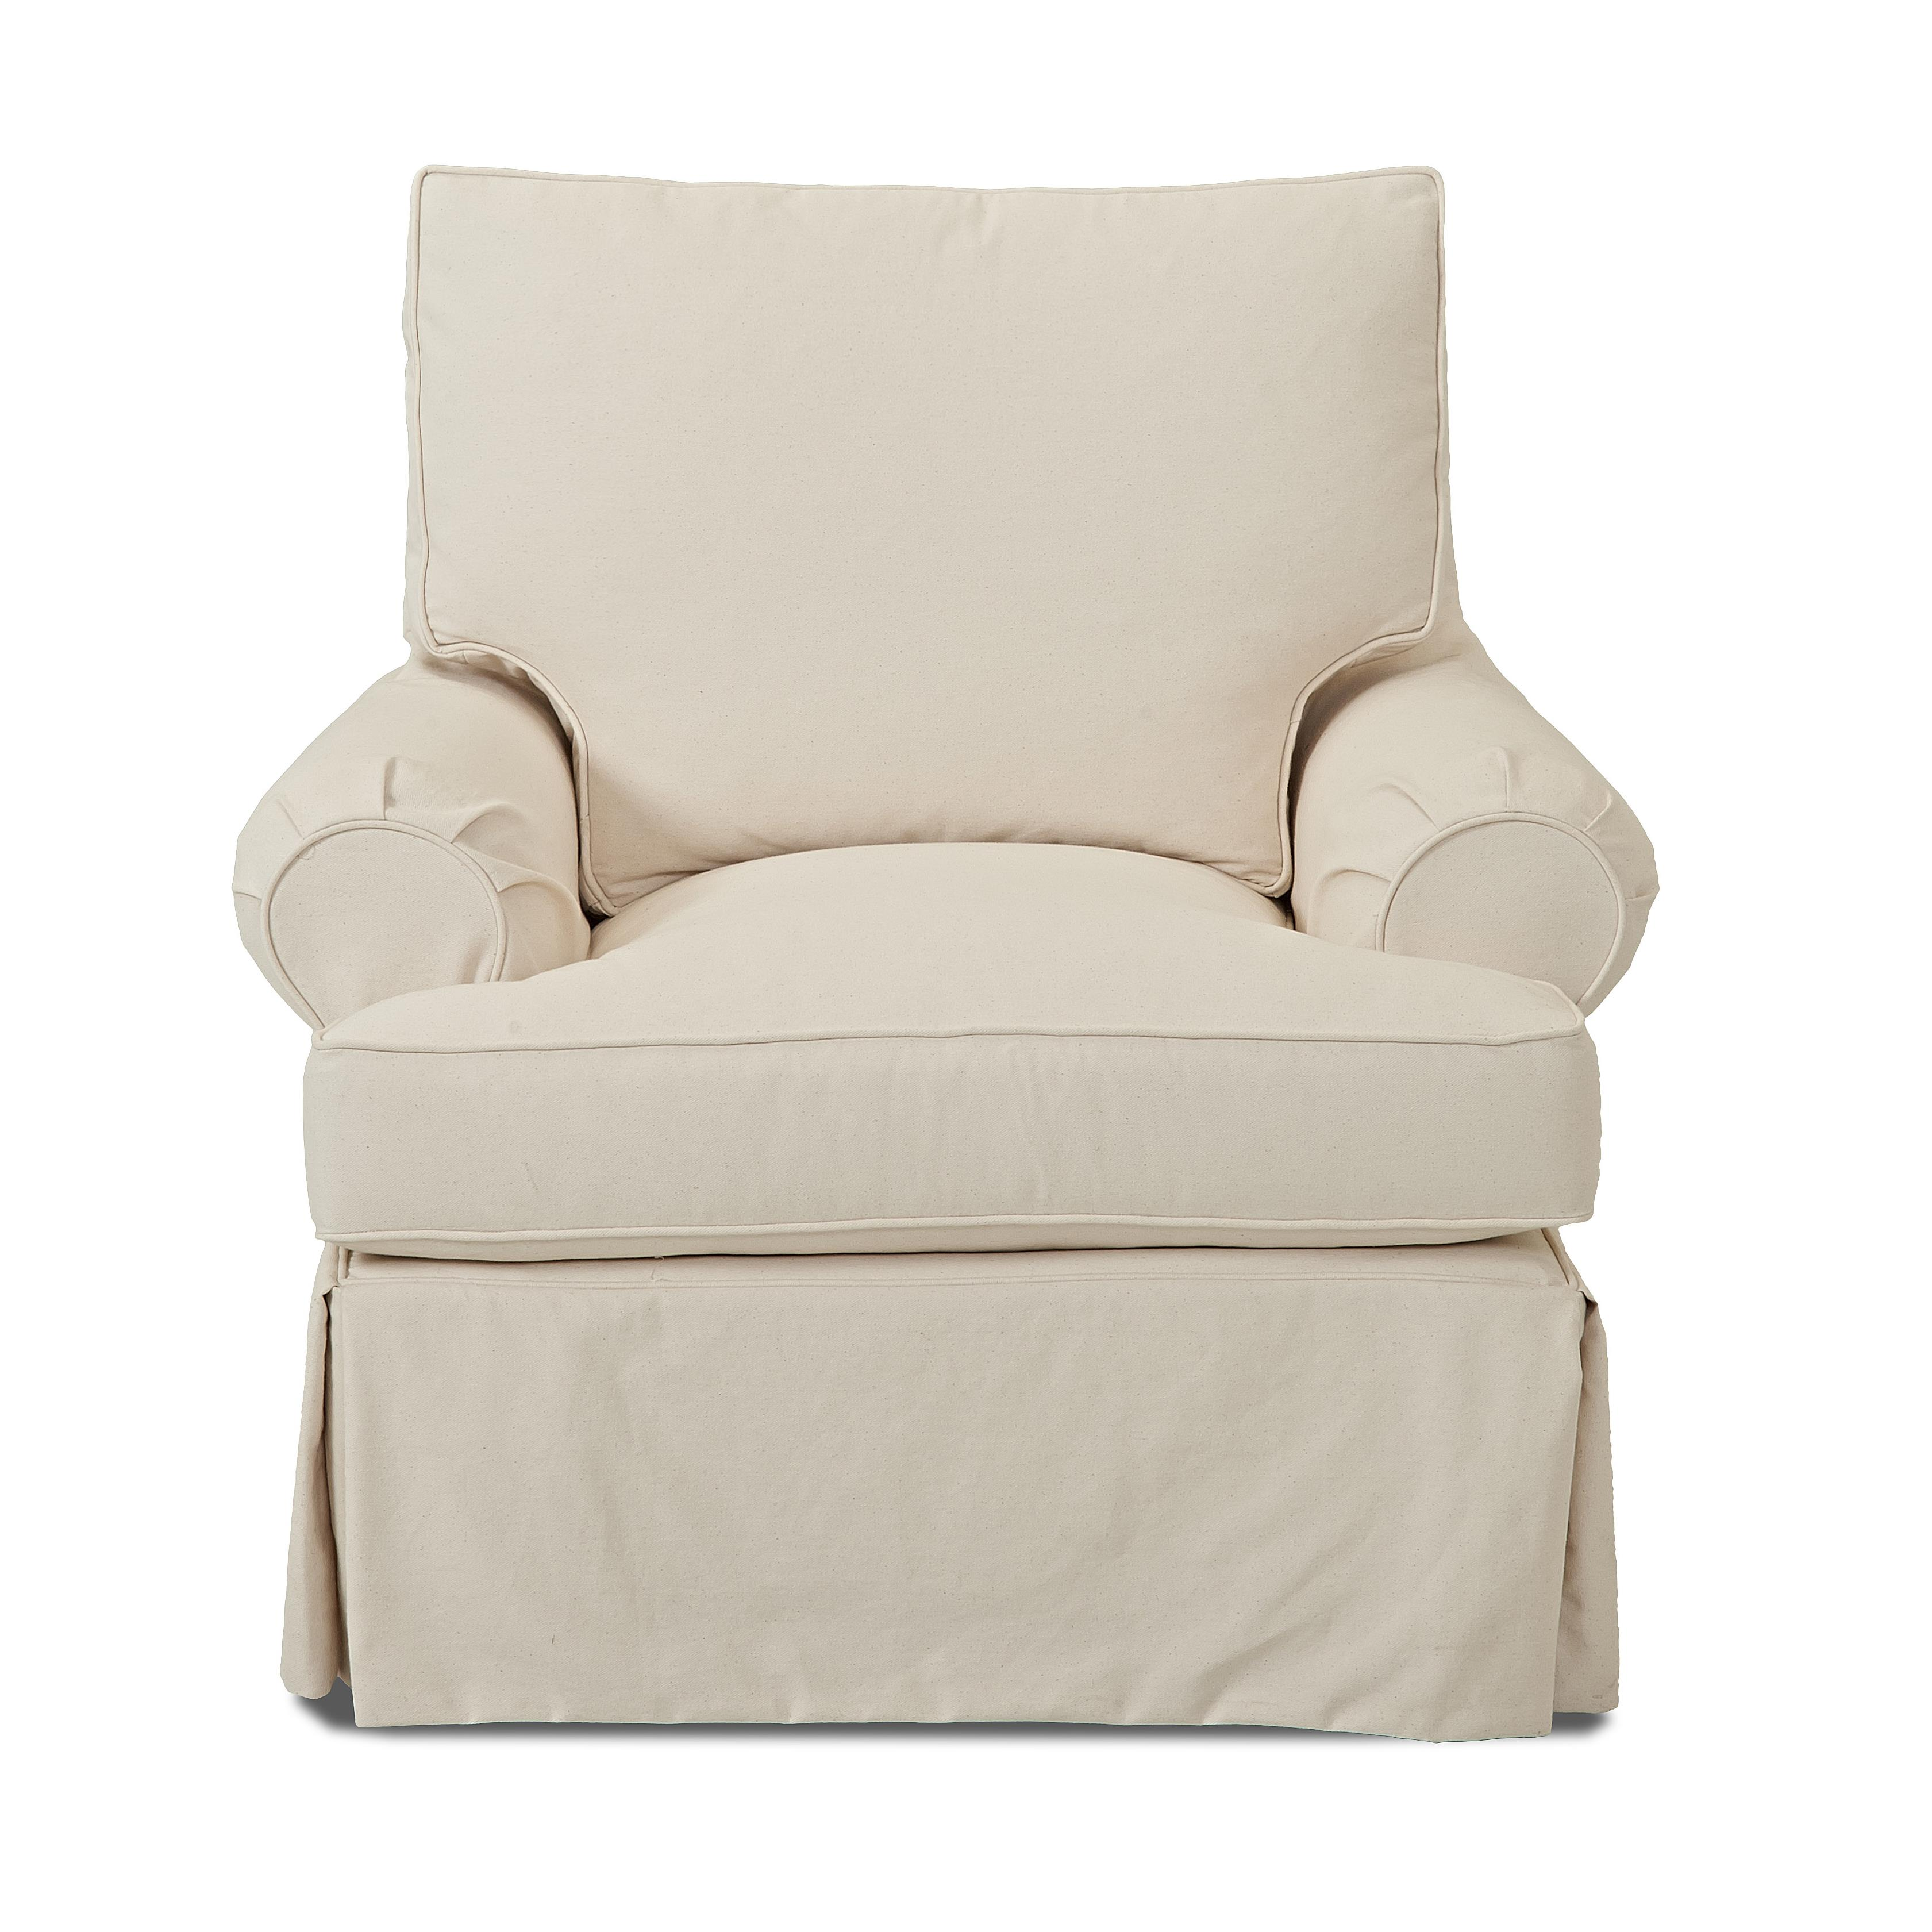 Casual Slip Cover Chair with Down Blend Cushions